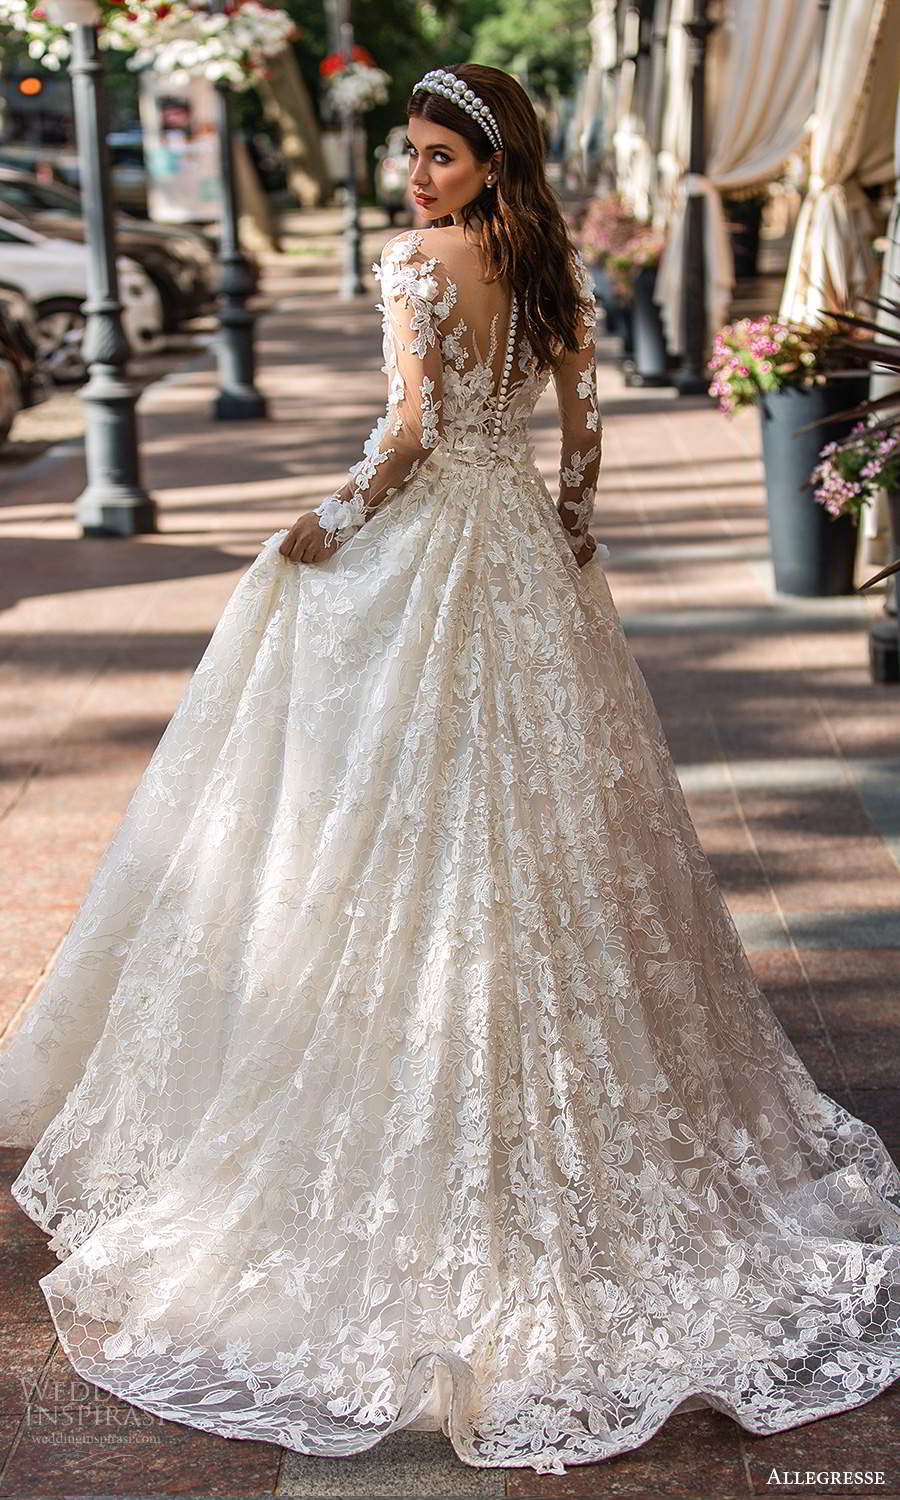 allegresse 2021 bridal illusion long sleeves off shoulder sweetheart neckline fully embellished a line ball gown wedding dress chapel train (5) bv